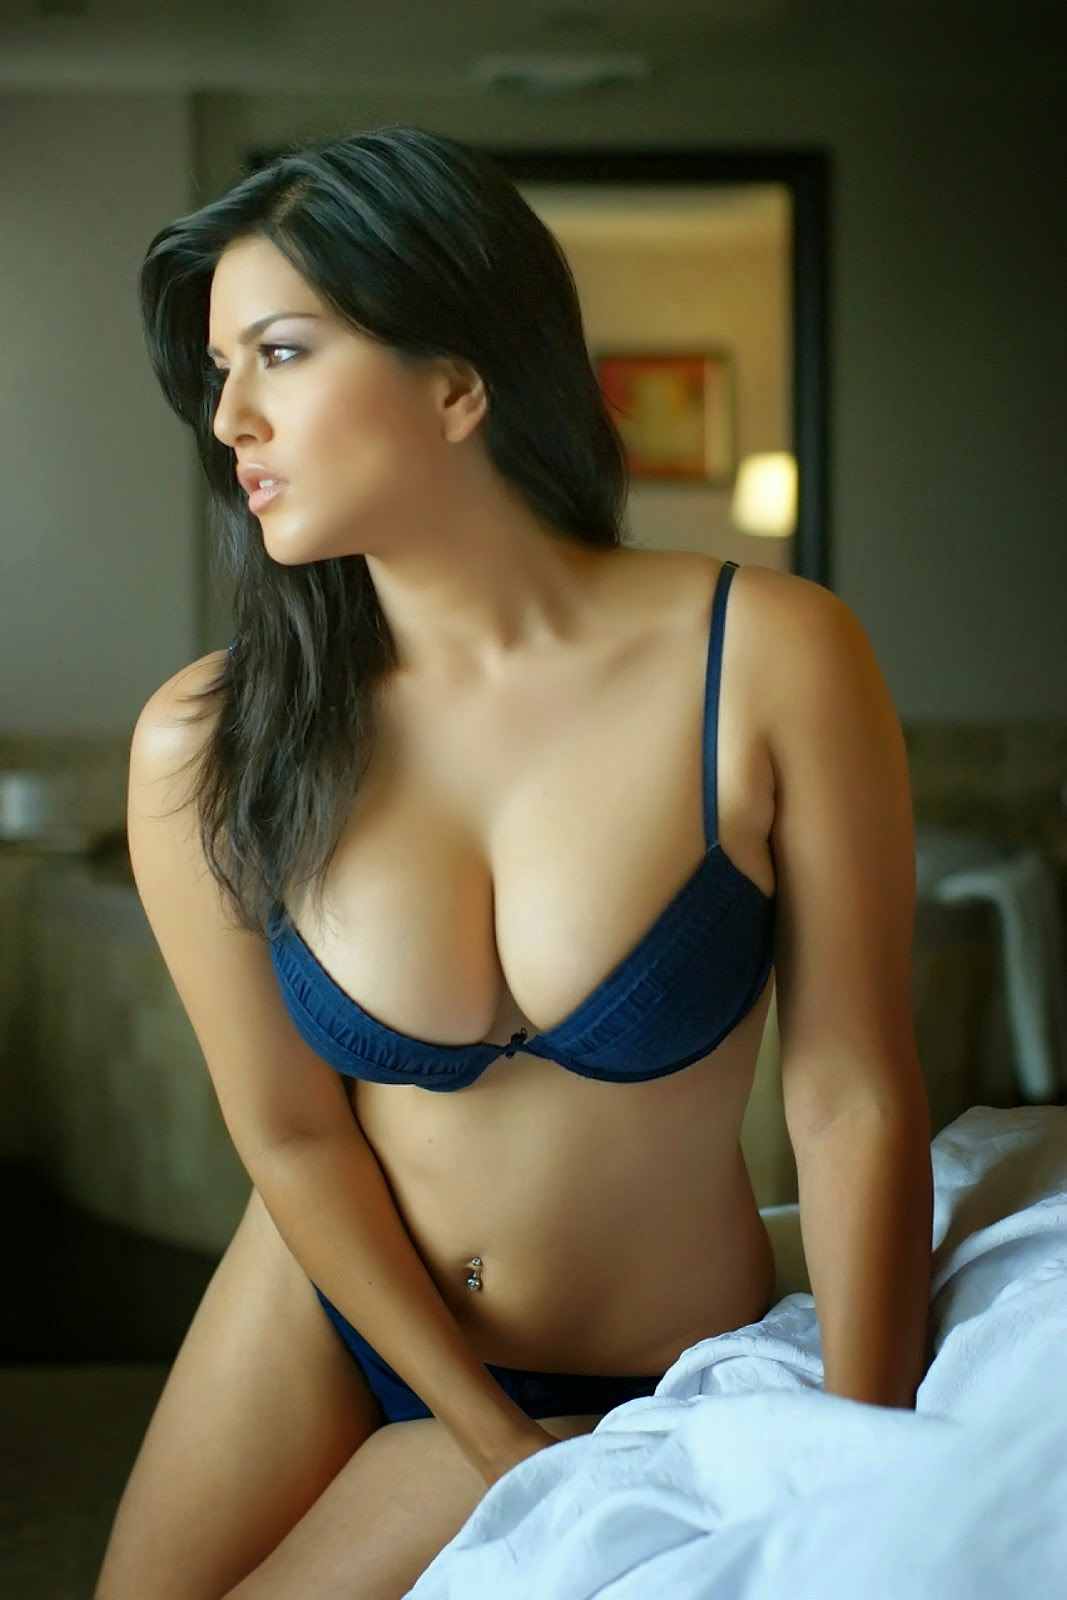 Sunny Leone Hot Images In Blue Bikini - Hot4Sure-8133